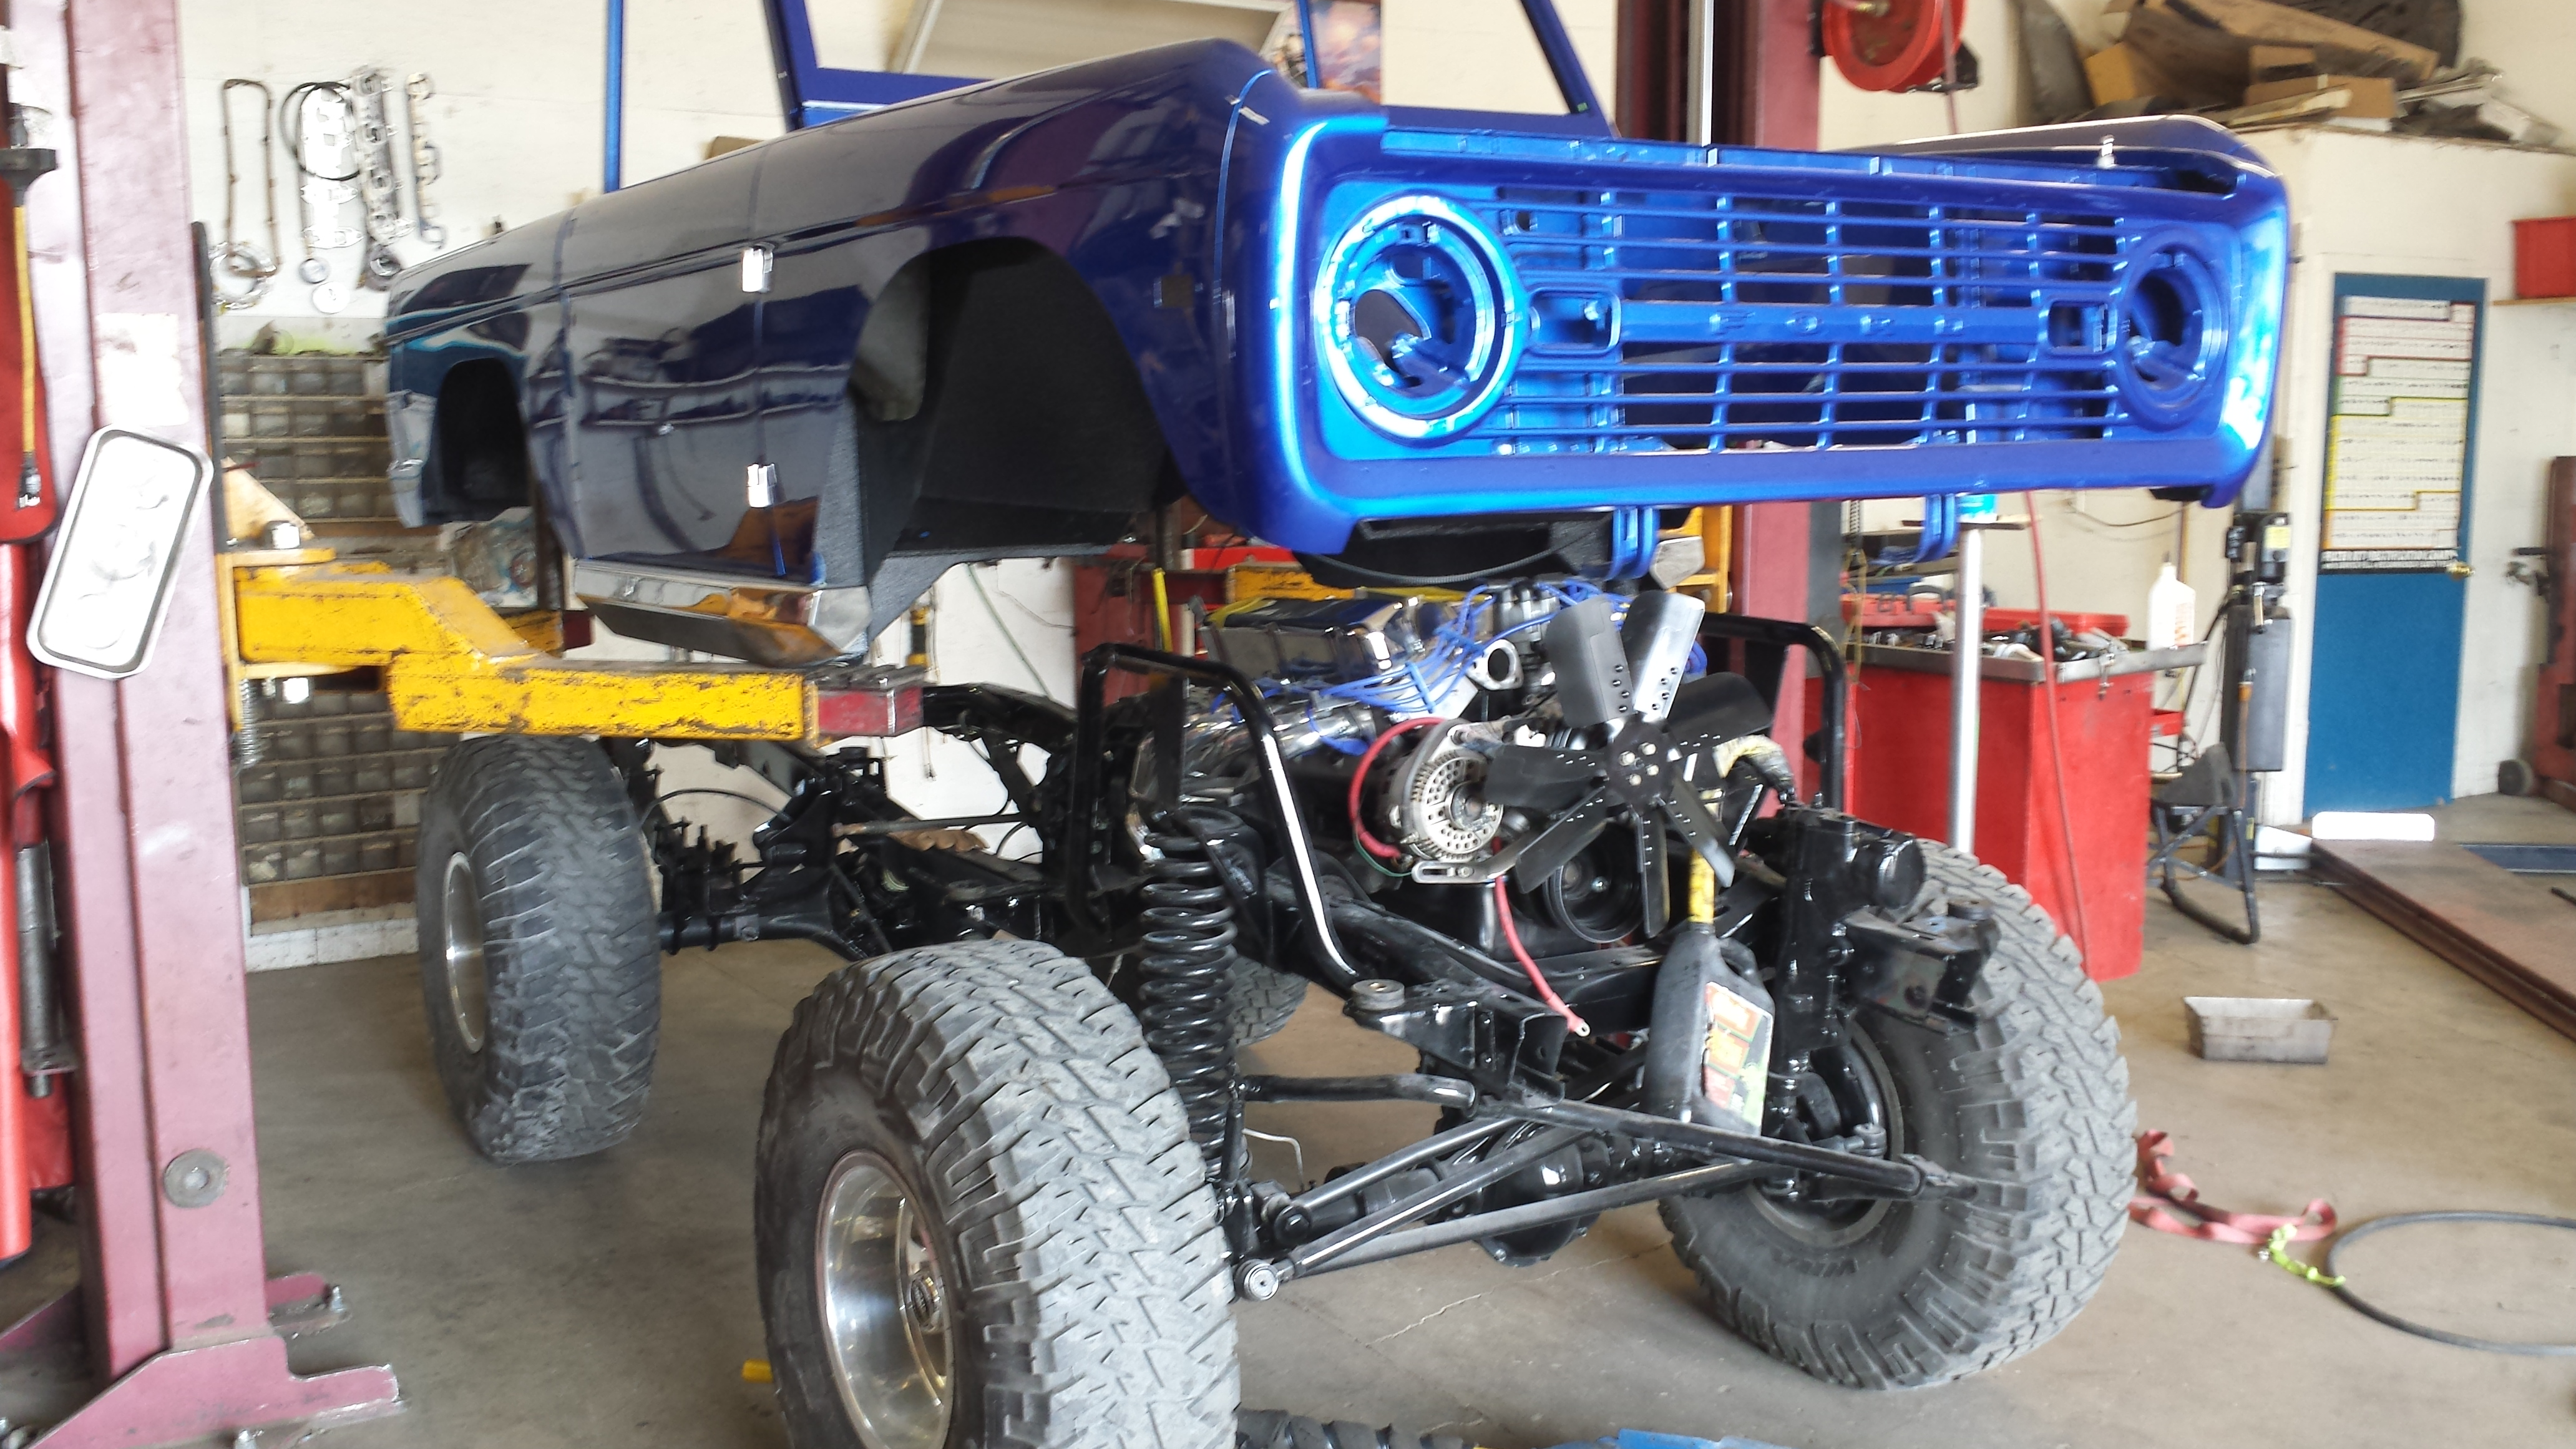 B&B Auto Repair - Early Blue Ford Bronco Restoration